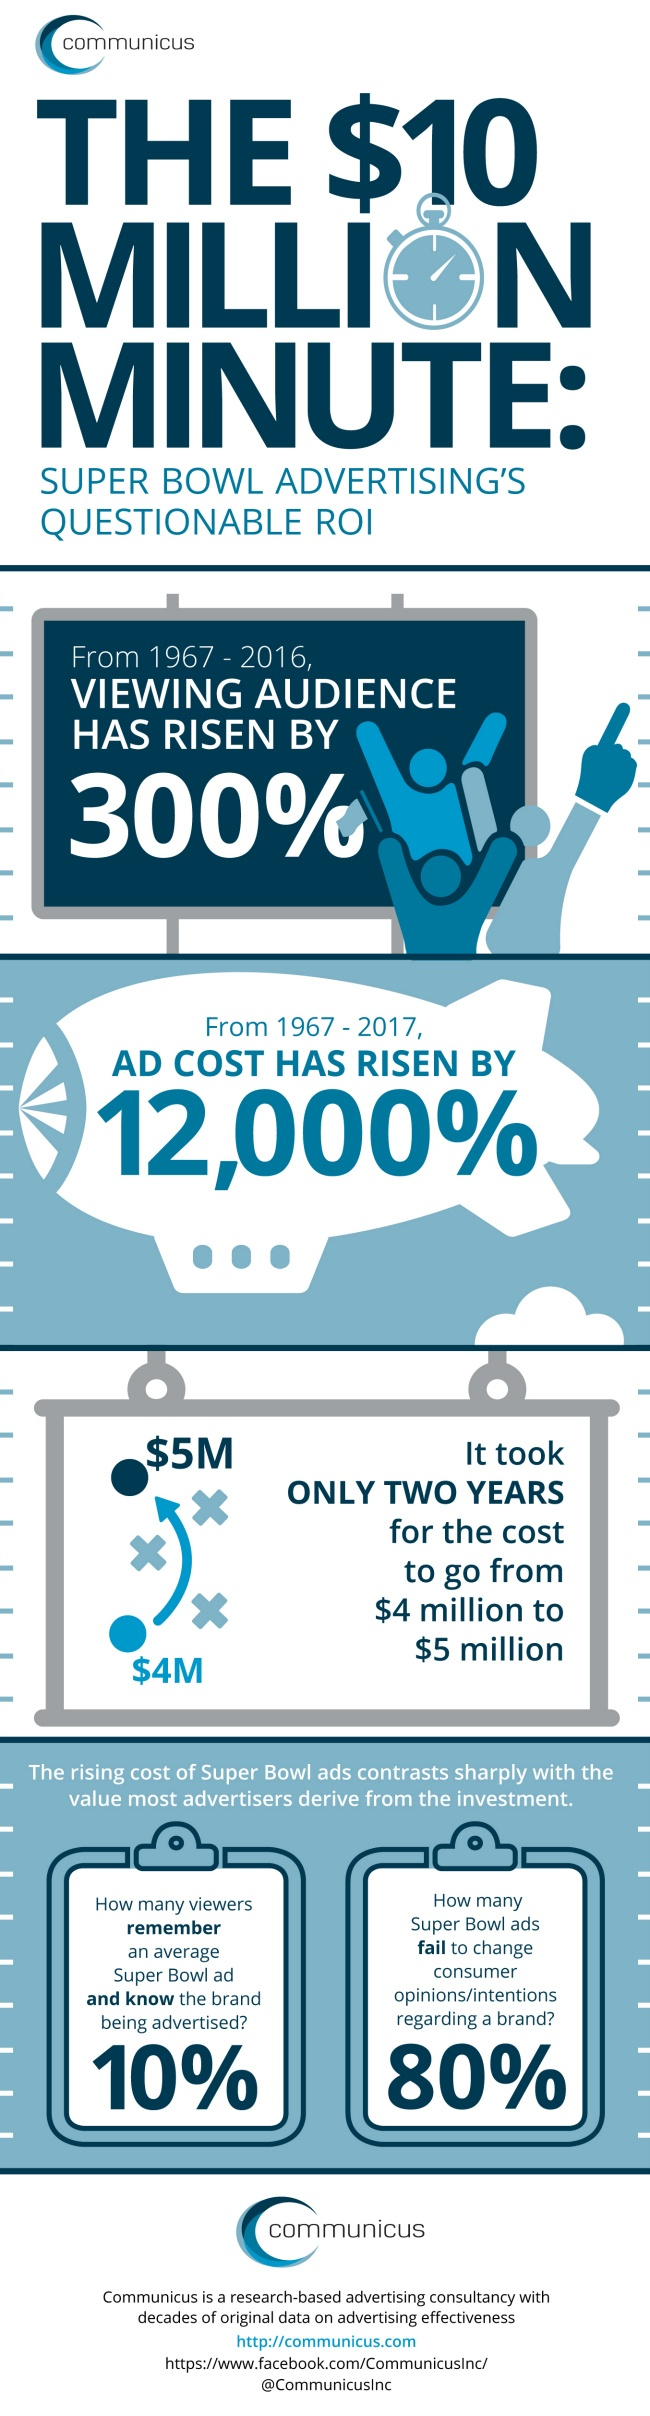 an analysis of the characteristics and effects of super bowl advertising The characteristics of the product  a 30-second ad during super bowl xlii in 2008 was  that it is difficult to measure the effects of advertising on sales .